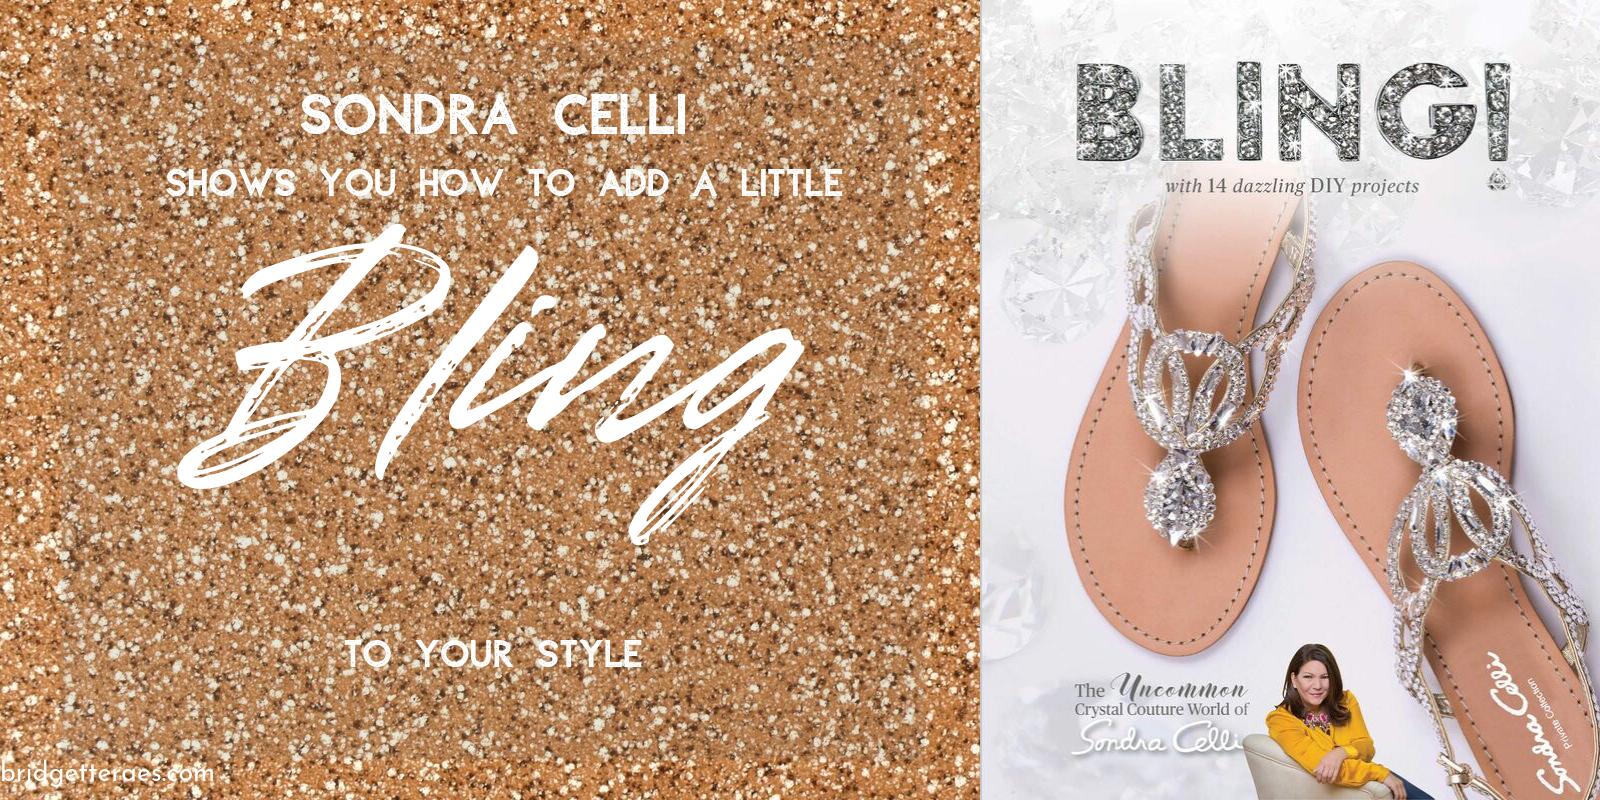 Sondra Celli Wants to Add a Little Bling to Your Style: A Review of her New Book